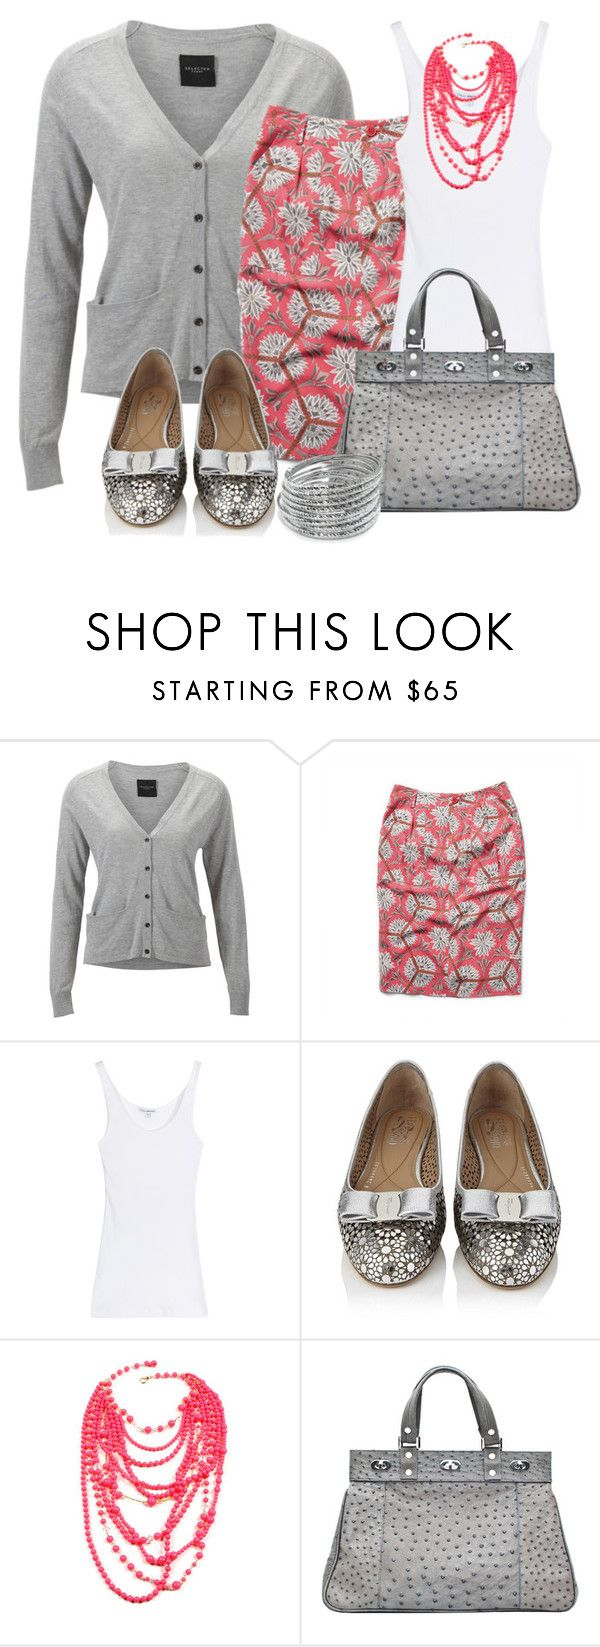 """Untitled #300"" by twinkle0088 ❤ liked on Polyvore featuring SELECTED, James Perse, Salvatore Ferragamo, Amrita Singh, Stephen Mikhail, ABS by Allen Schwartz, gray sweaters and gray bags"